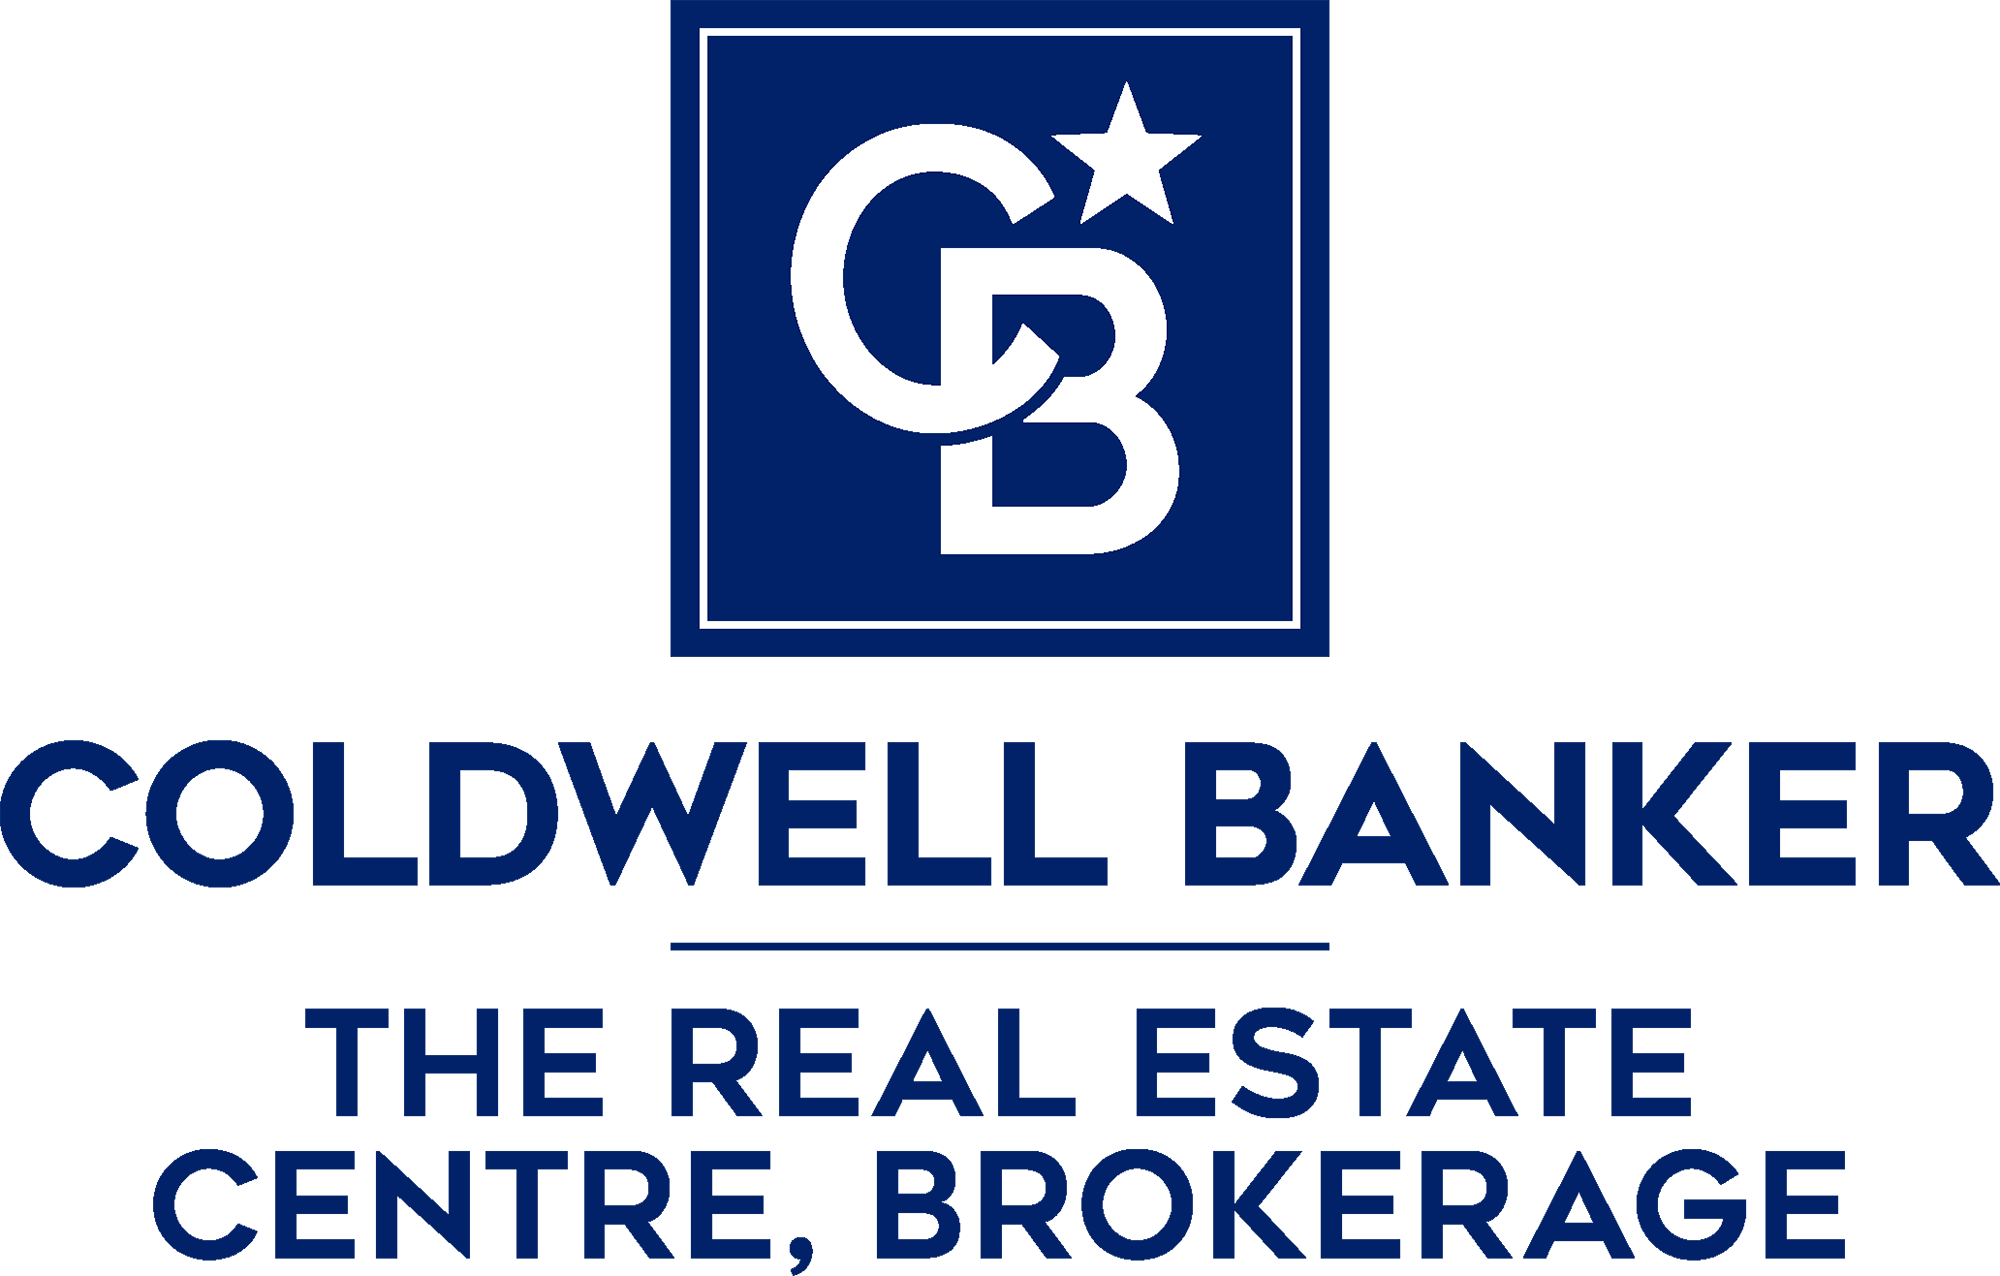 Coldwell Banker The Real Estate Centre Inc., Brokerage